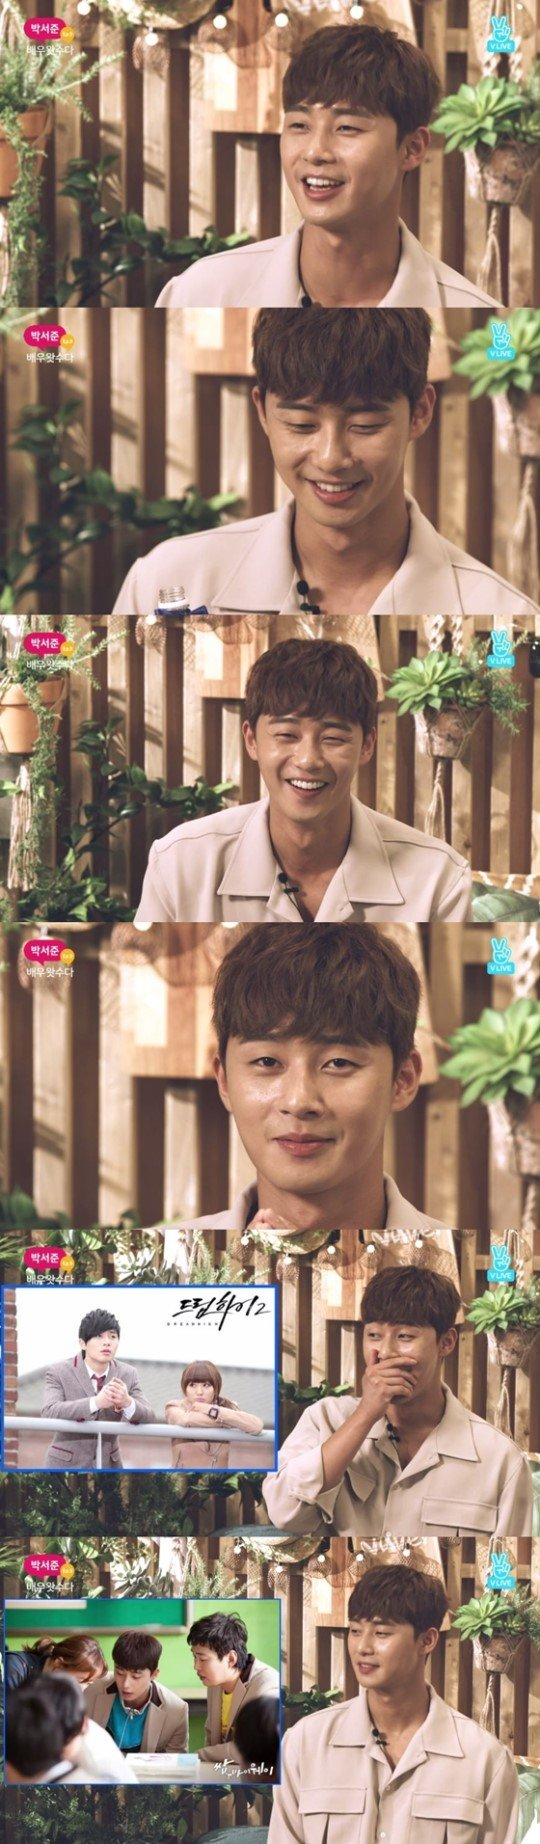 Park Seo-joon, an Actor Without an Exit to His Charm!